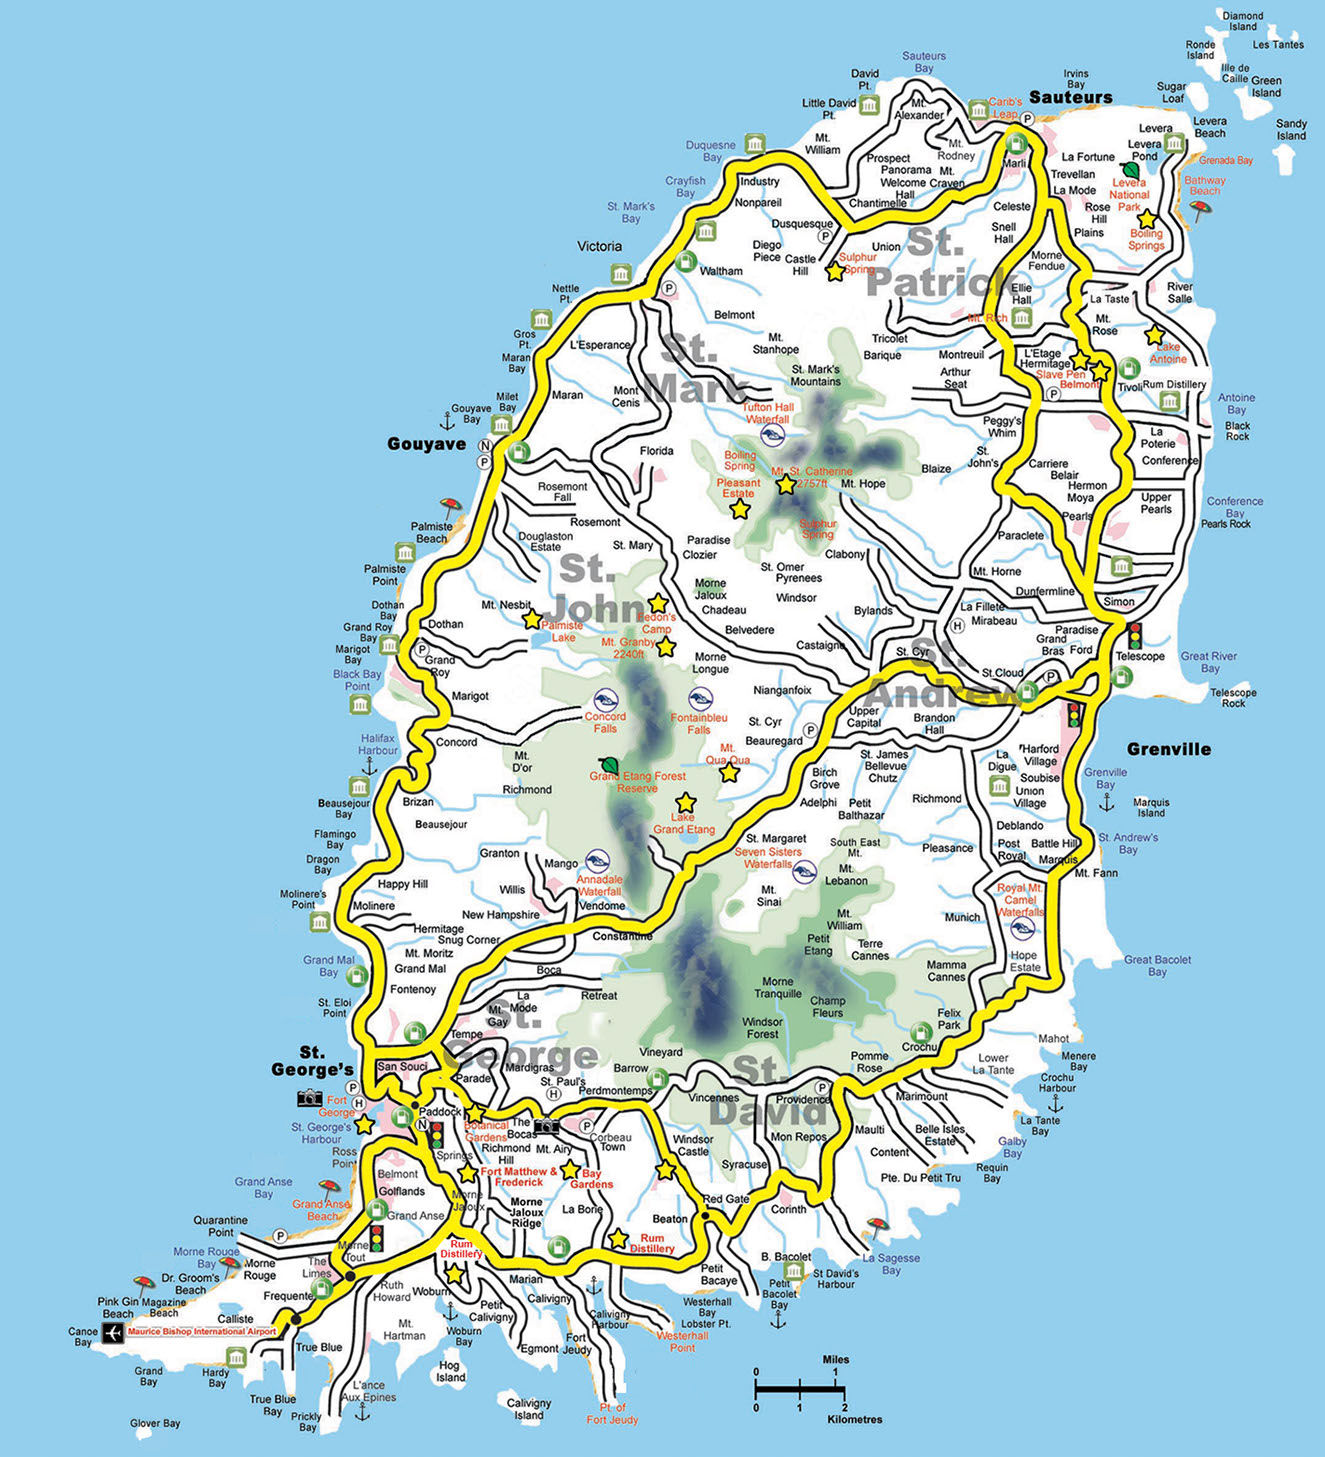 Grenada Map Map Of Grenada Interactive Road Map With Parishes - Grenada map download